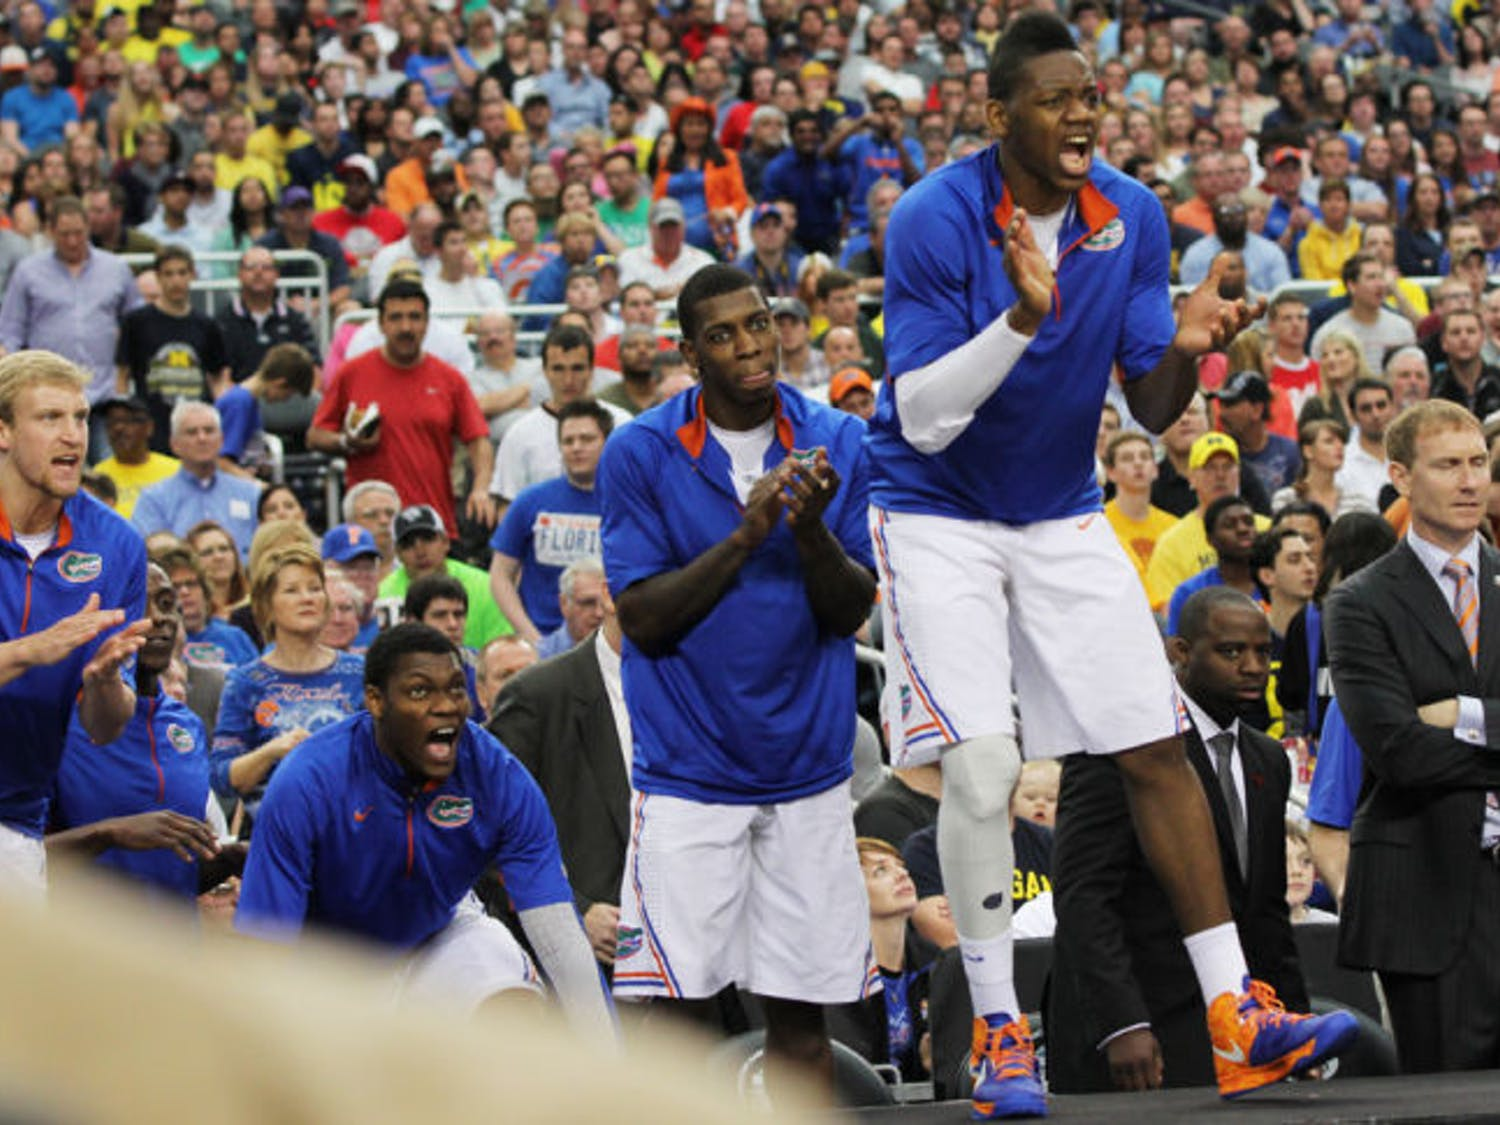 Will Yeguete (15) cheers for his teammates during Florida's 79-59 loss to Michigan on March 31 in Arlington, Texas.